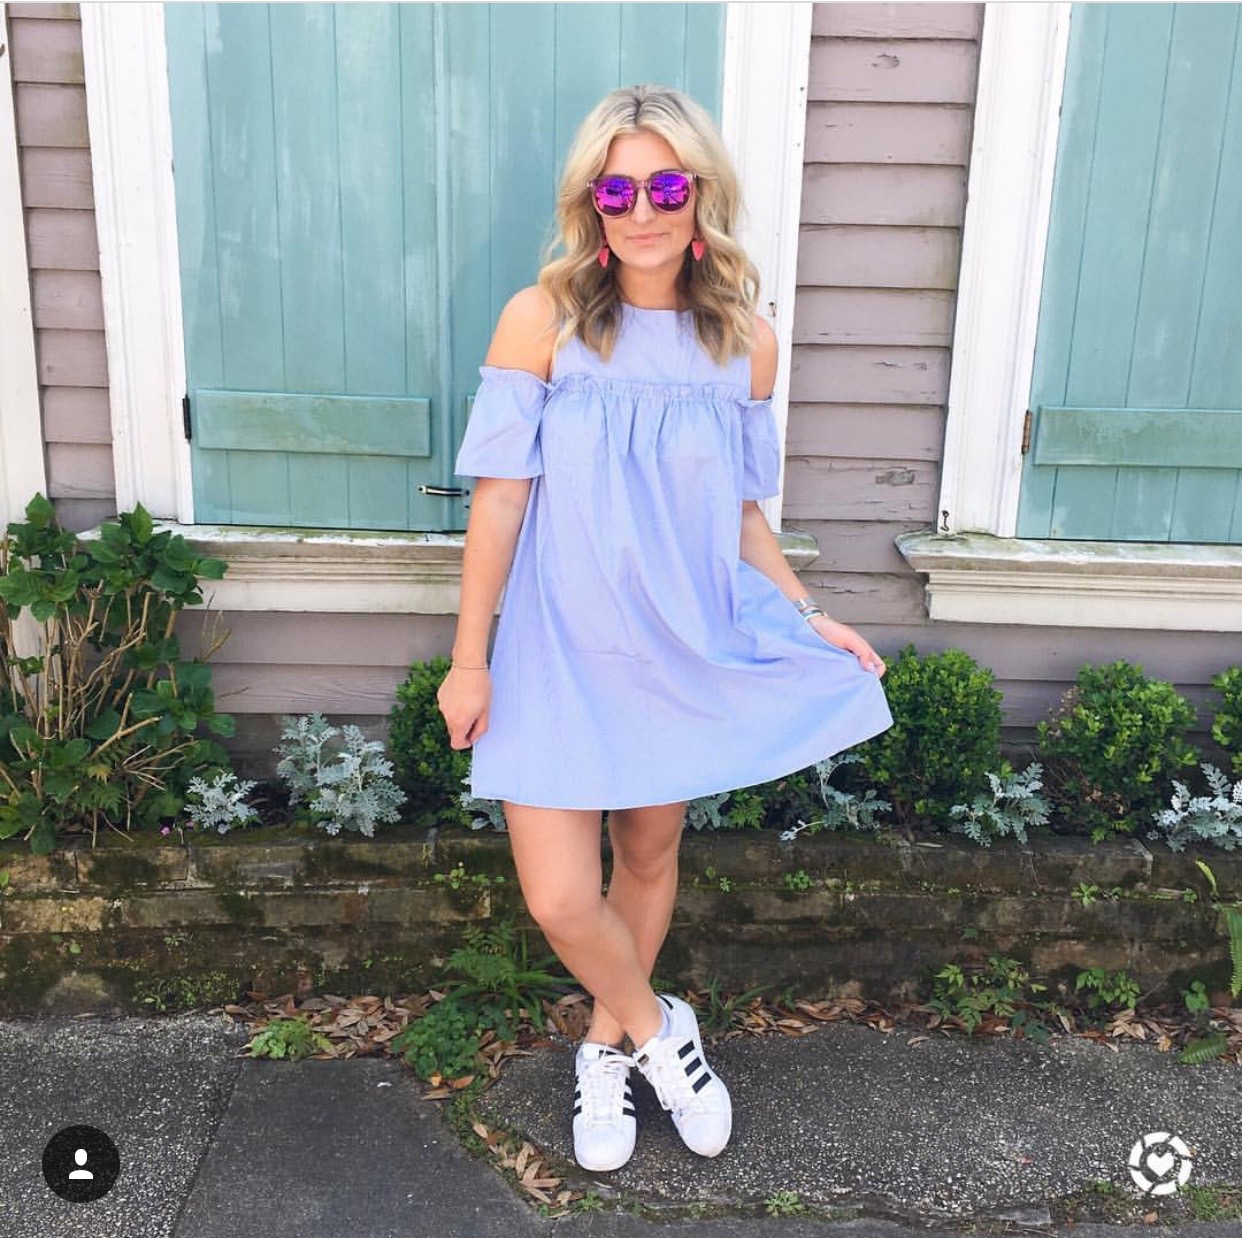 Nola Instagram Roundup by lifestyle and fashion blogger Audrey Madison Stowe - New Orleans Instagram Roundup featured by popular Texas travel blogger, Audrey Madison Stowe